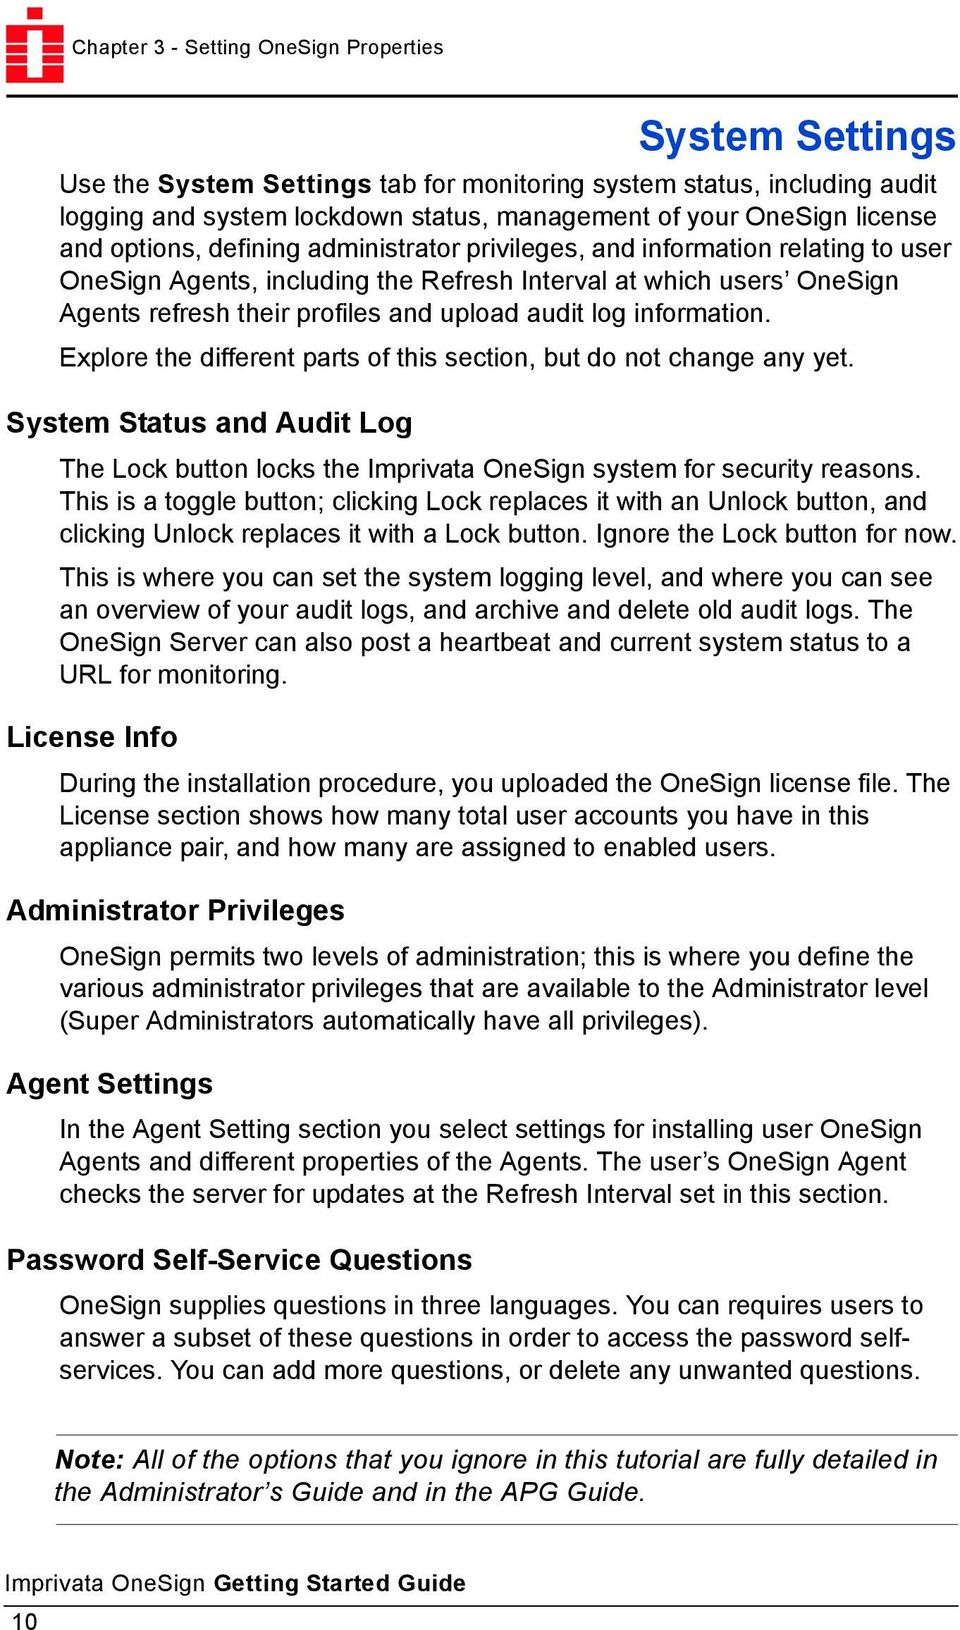 Imprivata OneSign Getting Started Guide - PDF